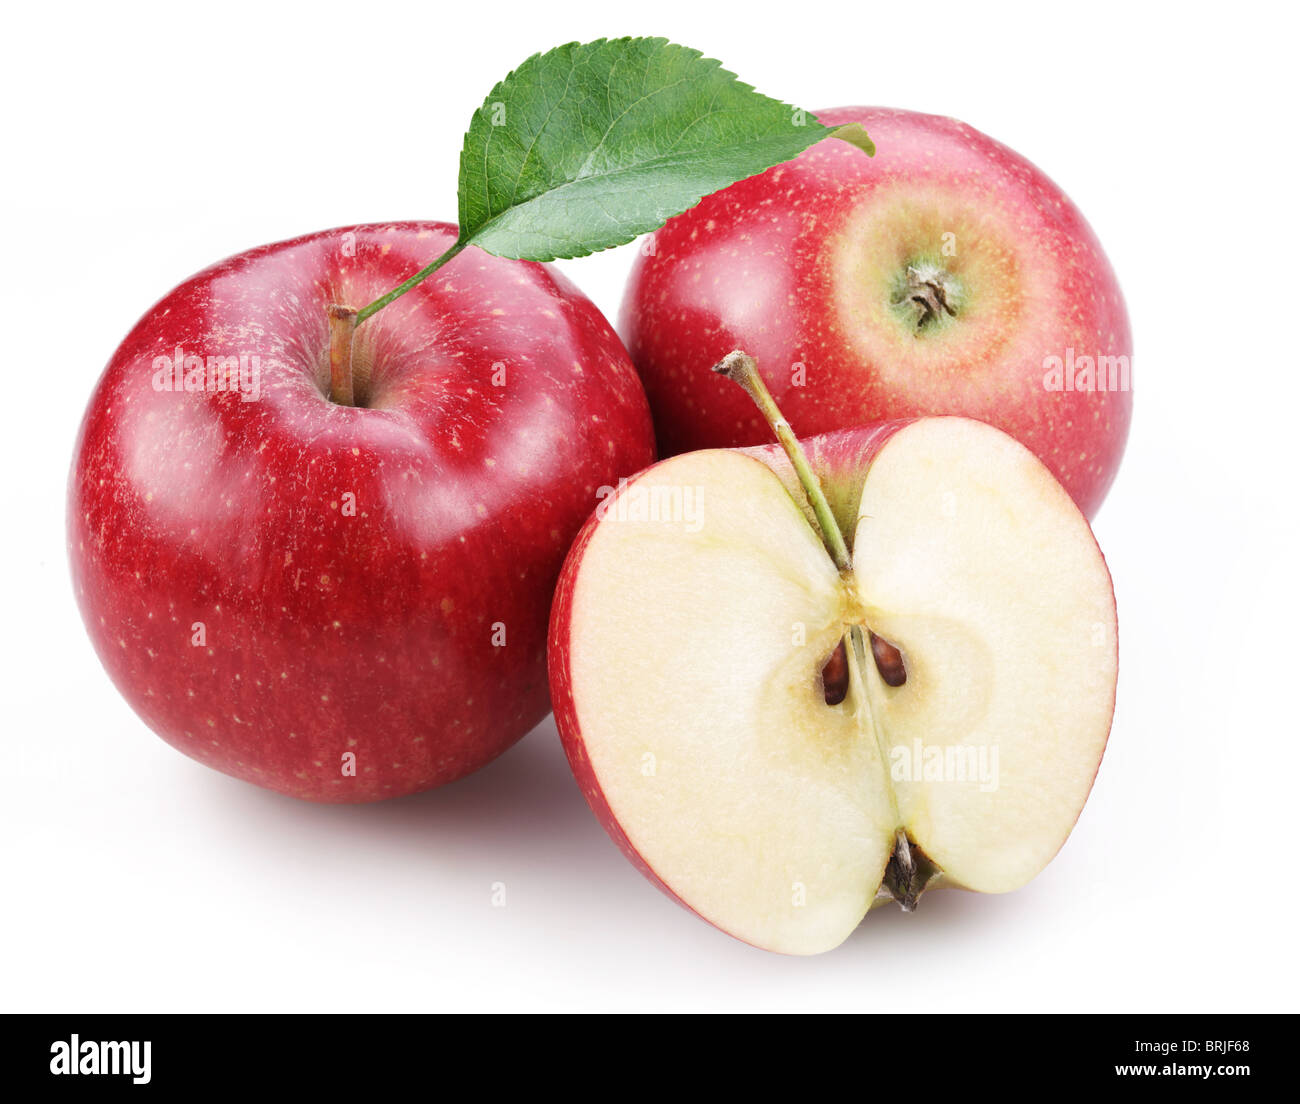 Two red apple and half of red apple isolated on a white background. - Stock Image